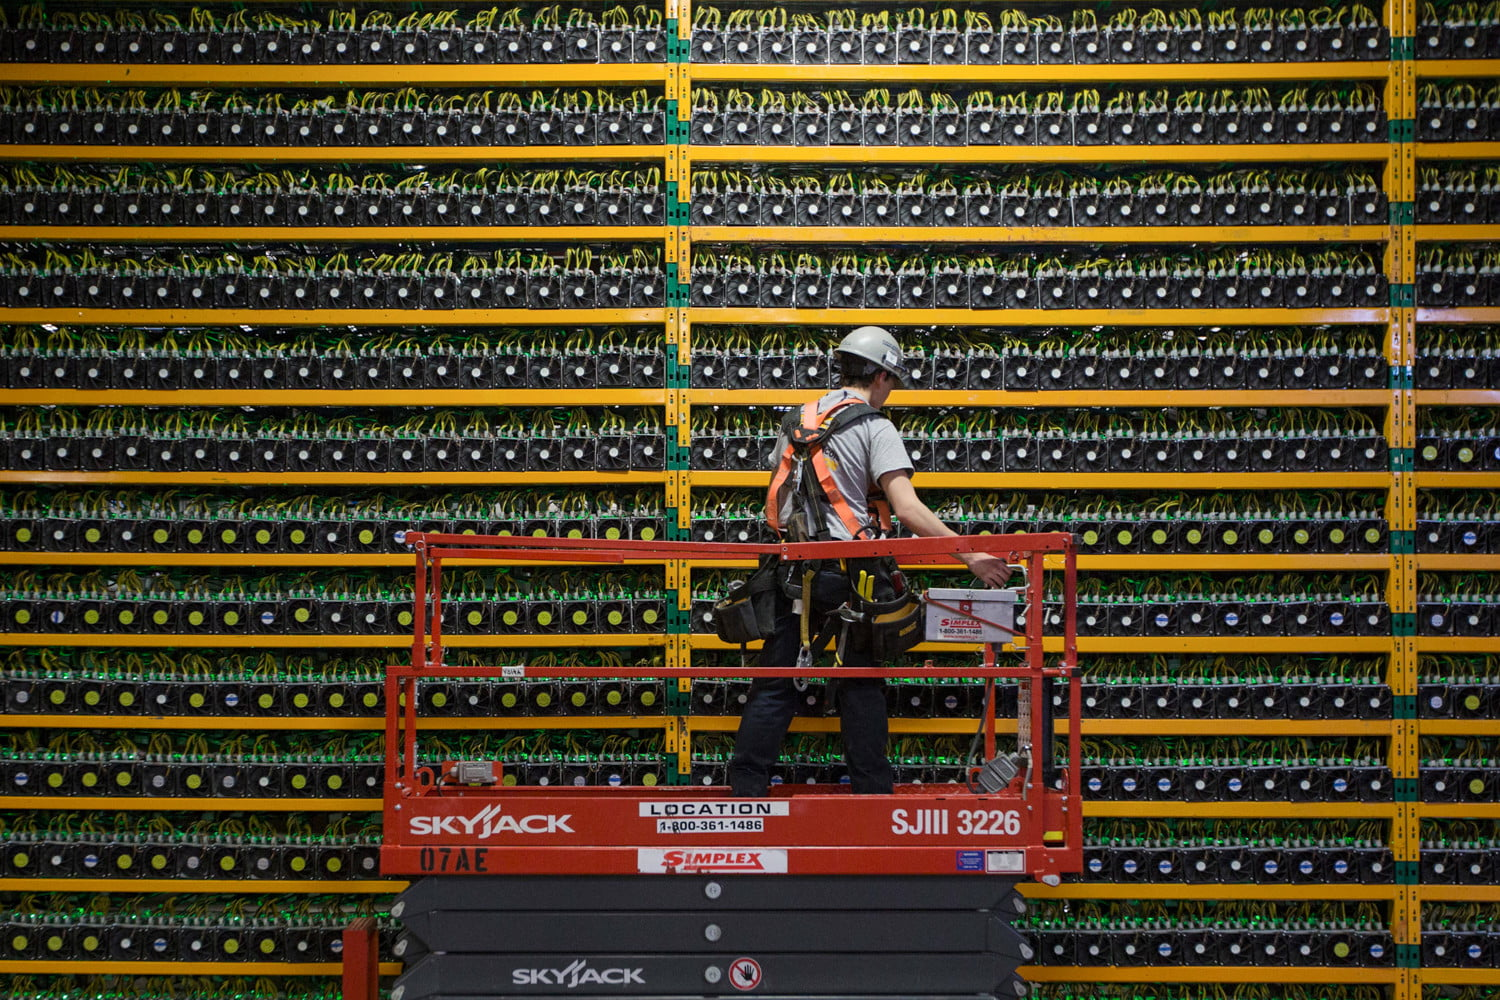 How bitcoin mining works - CoinDesk